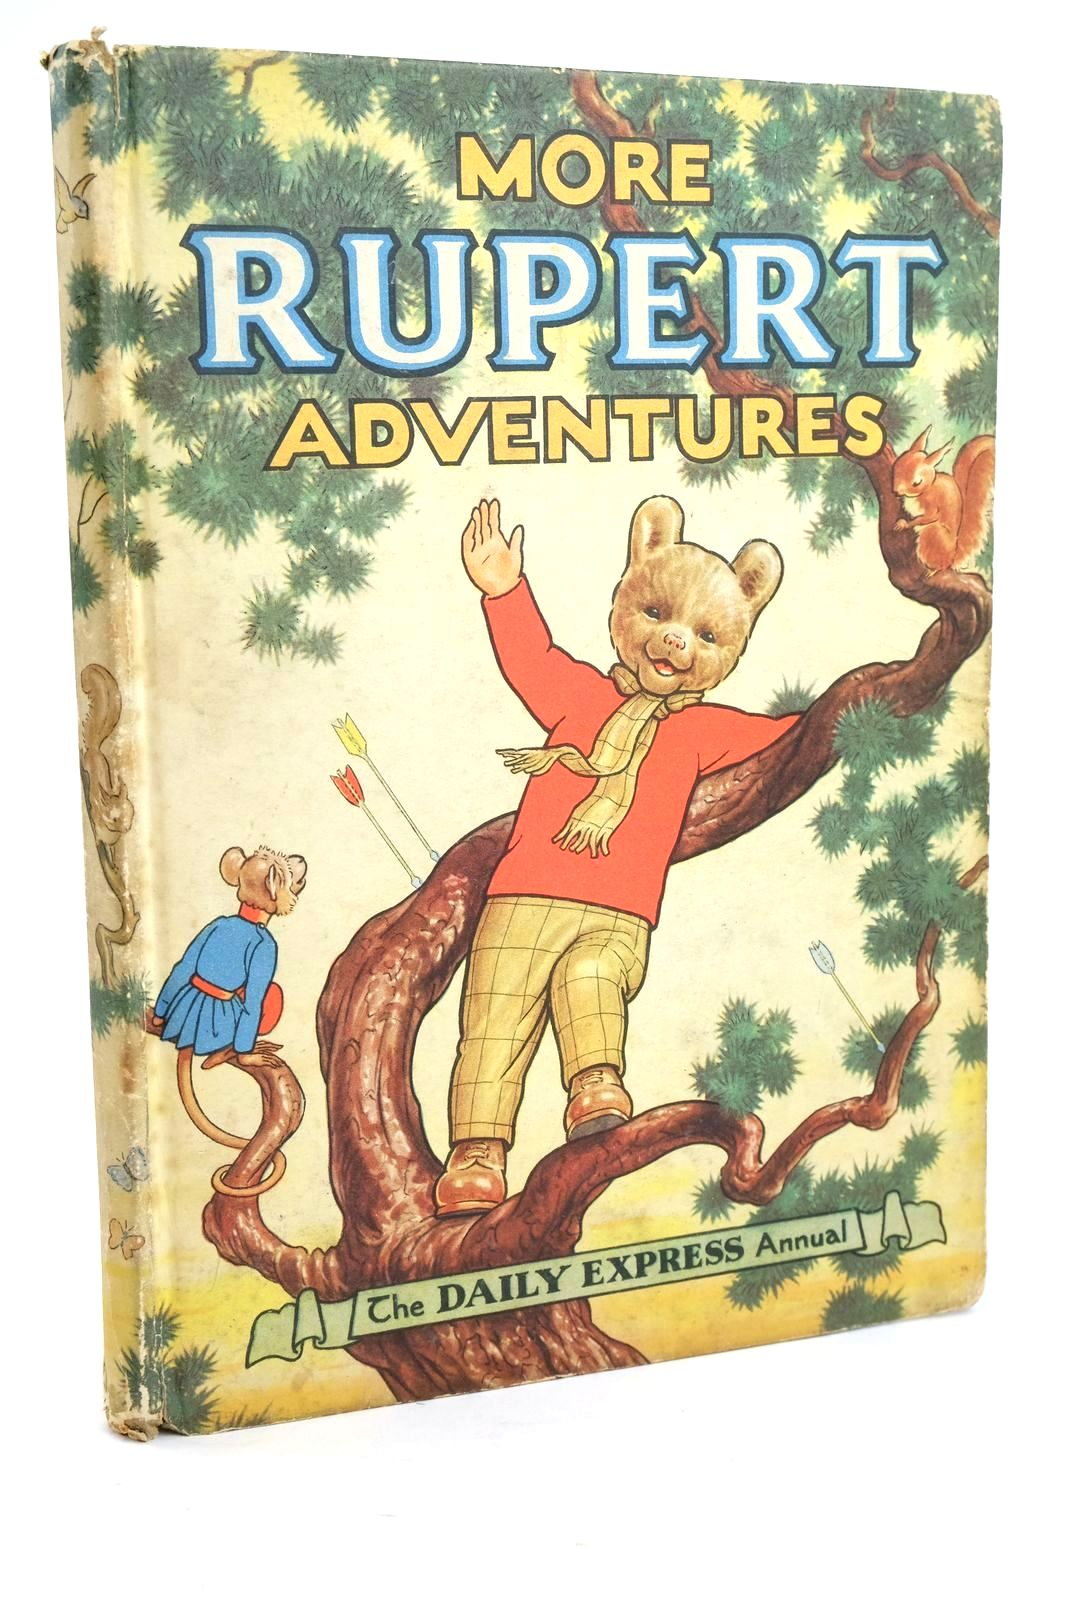 Photo of RUPERT ANNUAL 1952 - MORE RUPERT ADVENTURES written by Bestall, Alfred illustrated by Bestall, Alfred published by Daily Express (STOCK CODE: 1319463)  for sale by Stella & Rose's Books